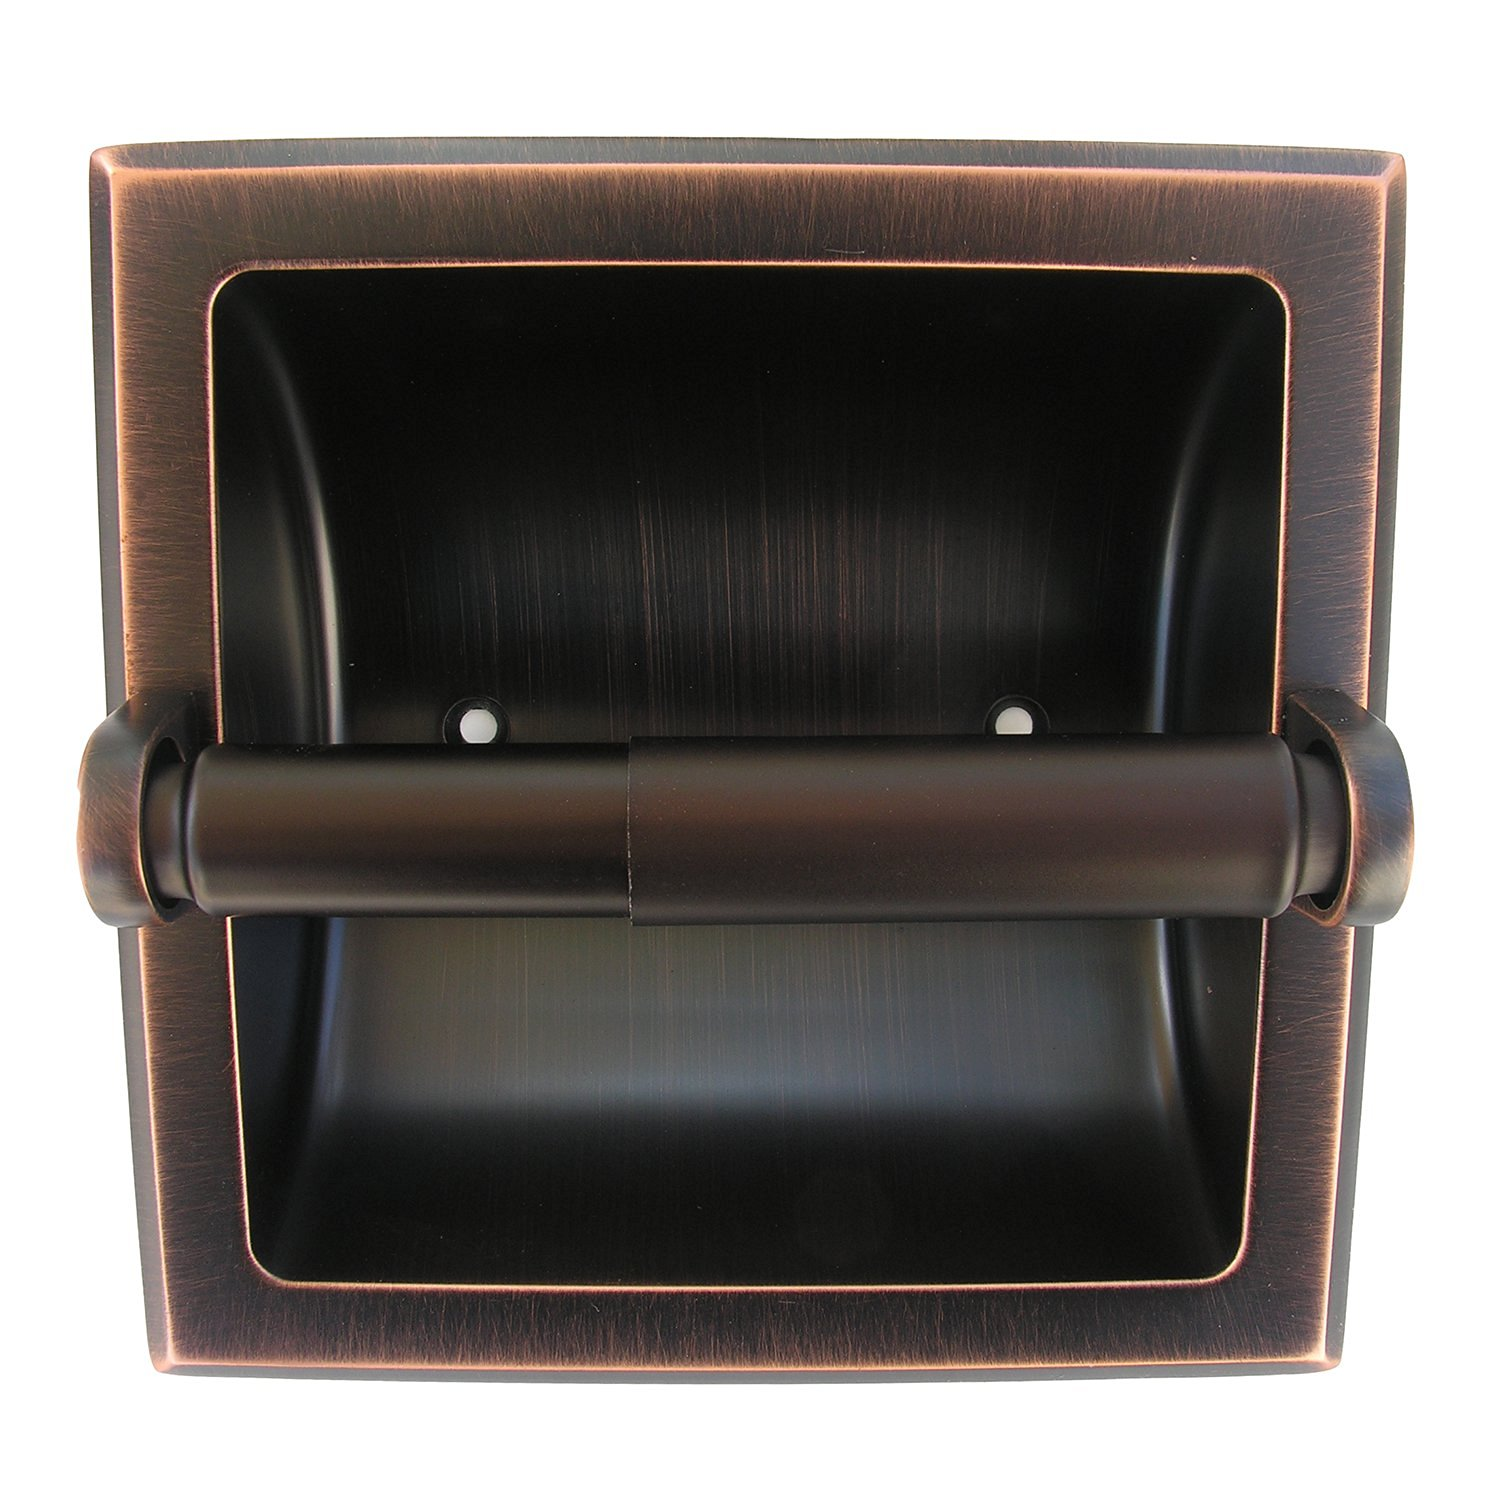 Oil Rubbed Bronze Taymor 01-ORB101SAL Residential Recessed Toilet Tissue Holder with Plated Bronze Aluminum Roller